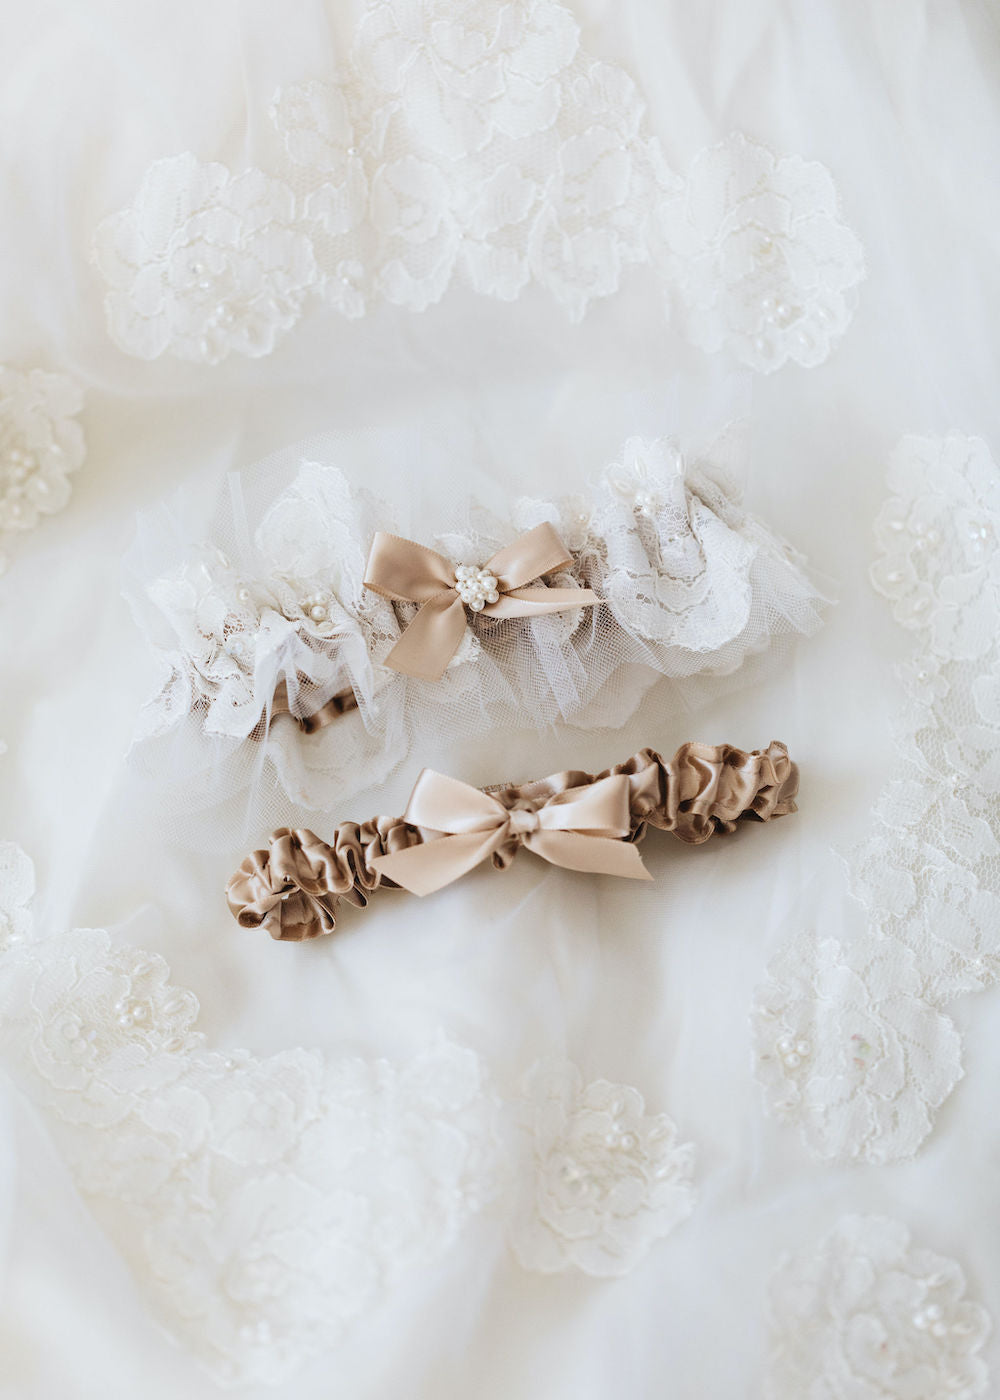 custom wedding garter set handmade from bride's mother's wedding dress w lace and pearls by expert bridal accessory designer, The Garter Girl